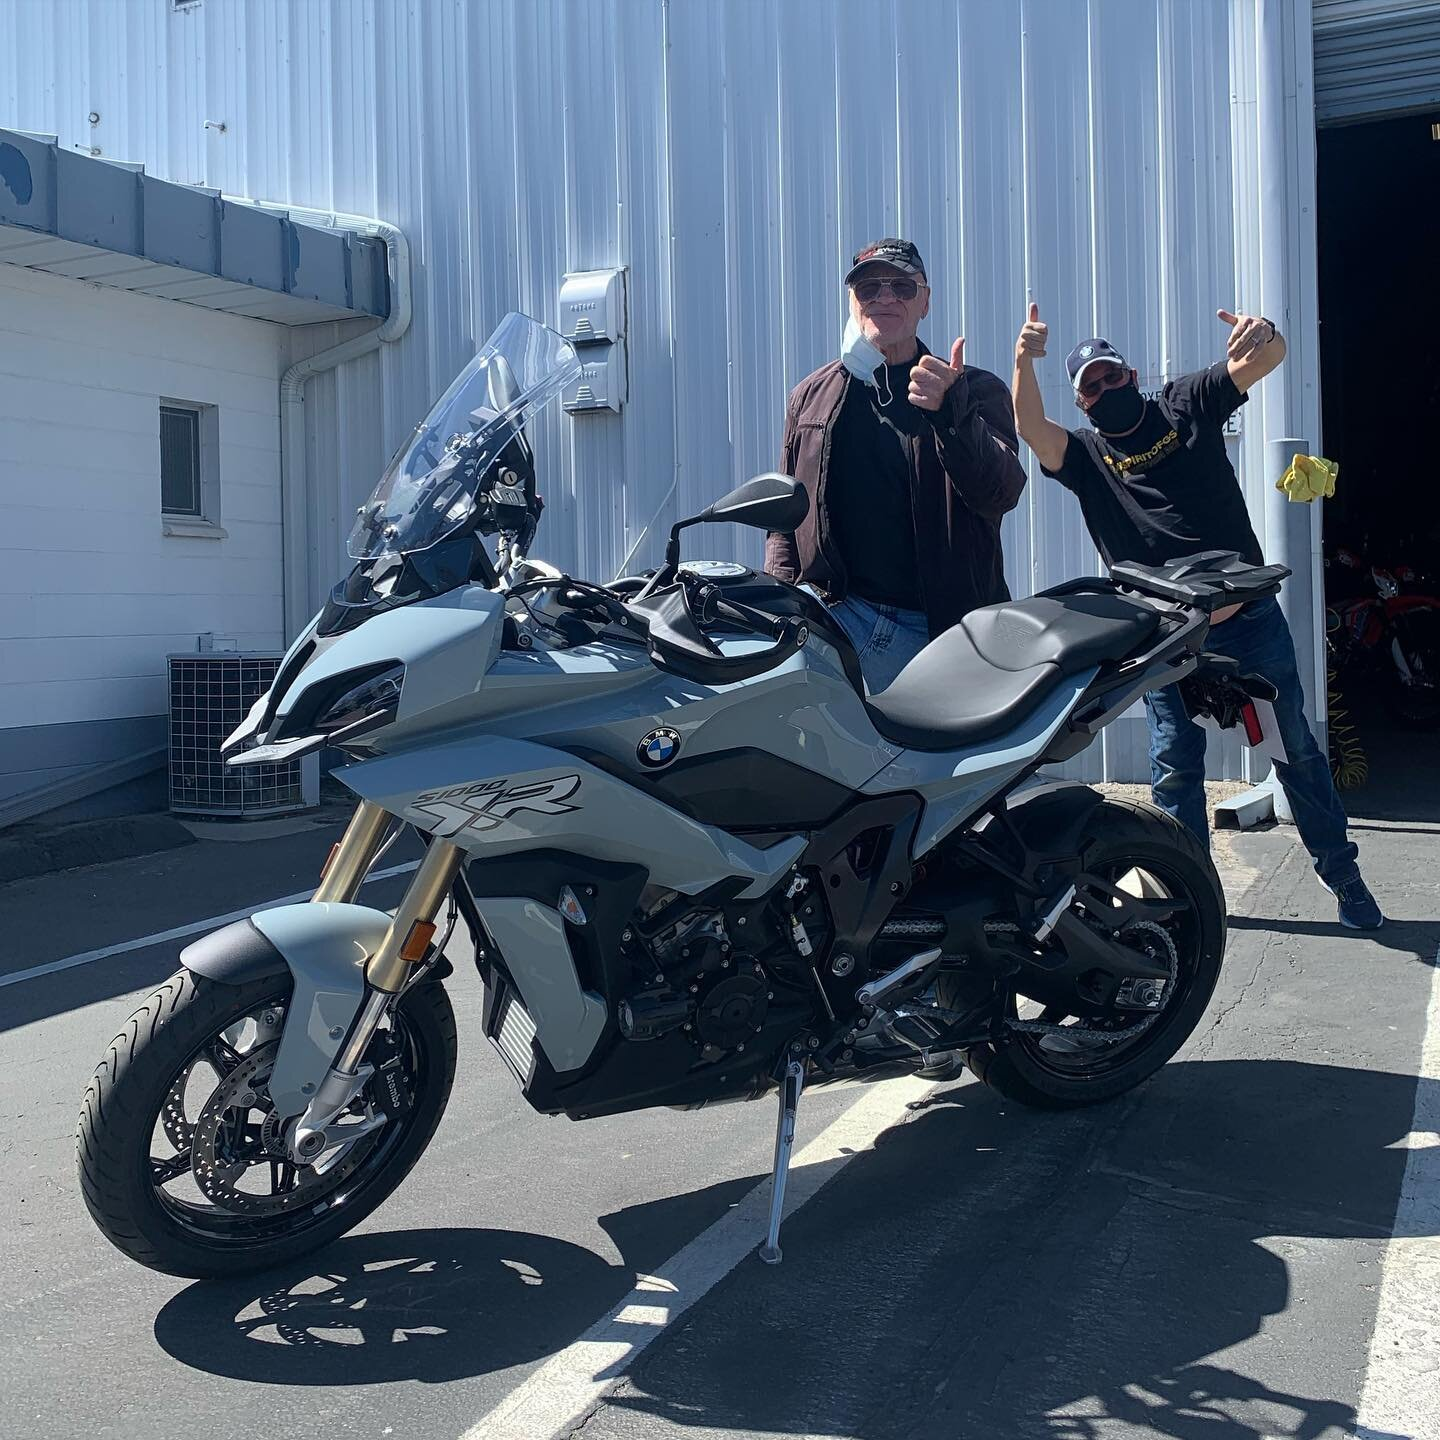 """""""New York"""" George L. - 2020 BMW S1000XR. Lifetime bike count...75!  NY George rules! Congrats and many thanks! 🤘🏍😀  • • • www.sierrabmw.com www.shopbmwmotorcycle.com parts.sierrabmw.com . . #bmw  #bike  #motorcycle  #reno #sparks #carsoncity #laketahoe #truckee #nevada  #california #dealer  #sierrabmw #makelifearide  #bikelife  #neverstopchallenging #s1000xr"""